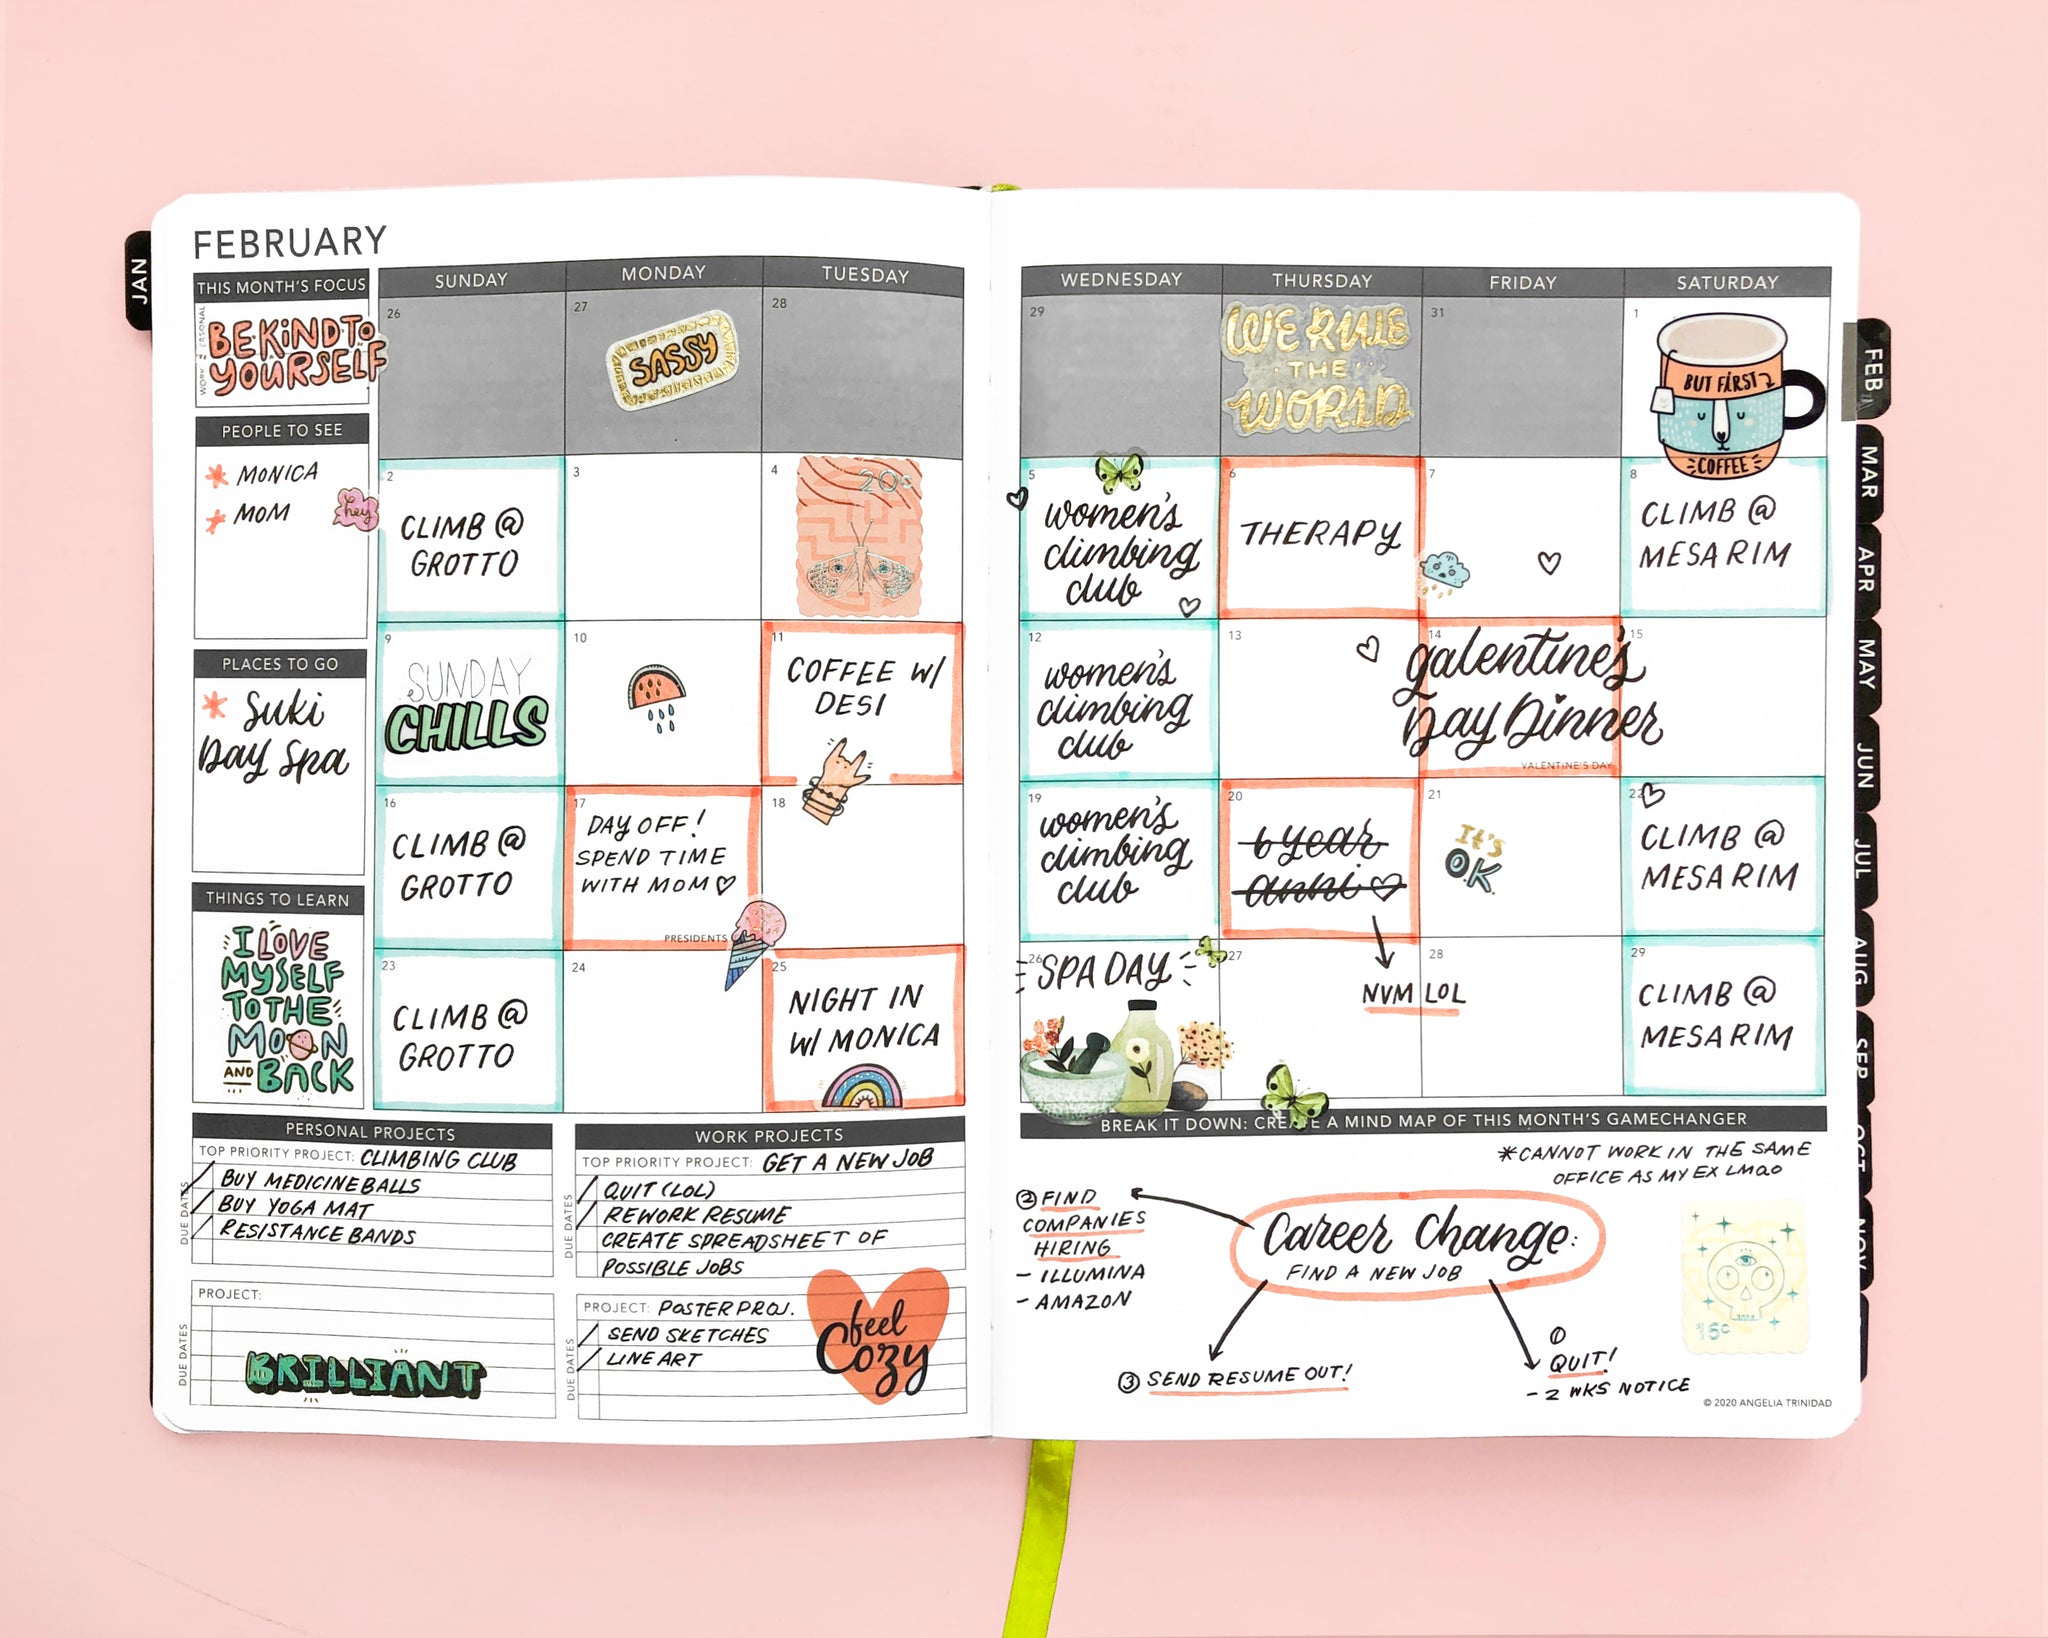 Open Layout of Passion Planner Monthly Layout with Appointments